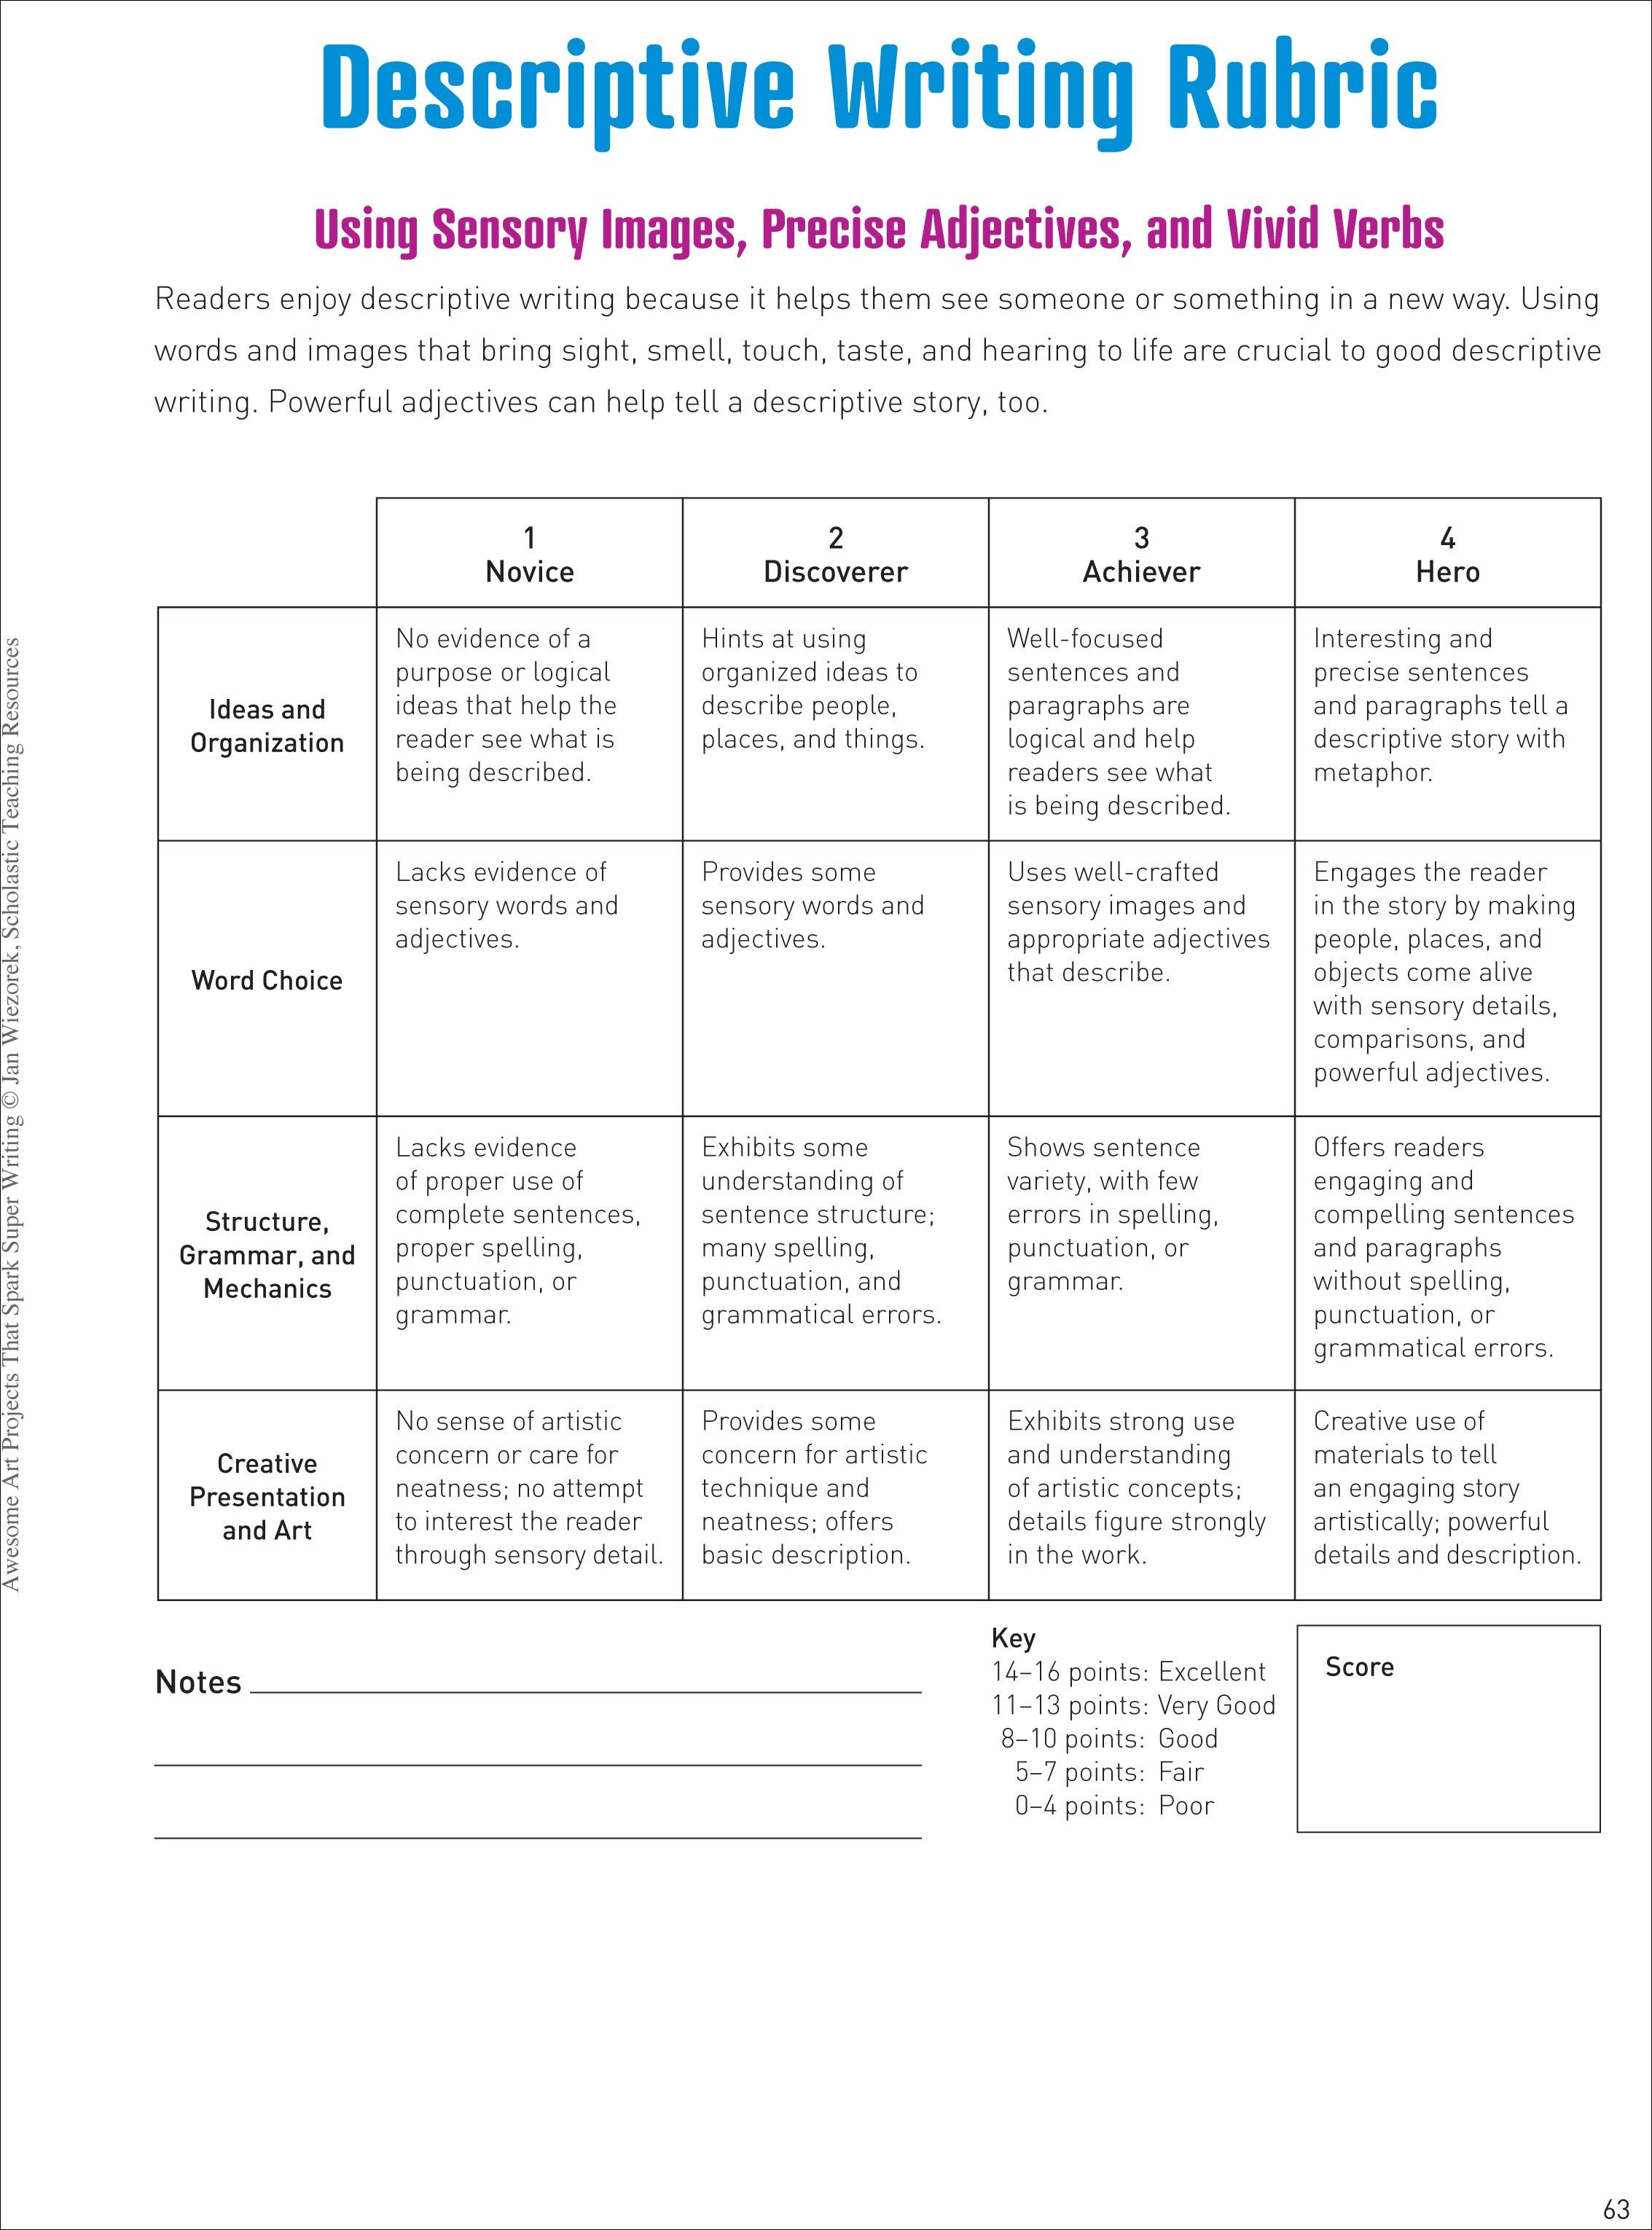 grade 5 descriptive writing rubric - Google Search | Academic ...